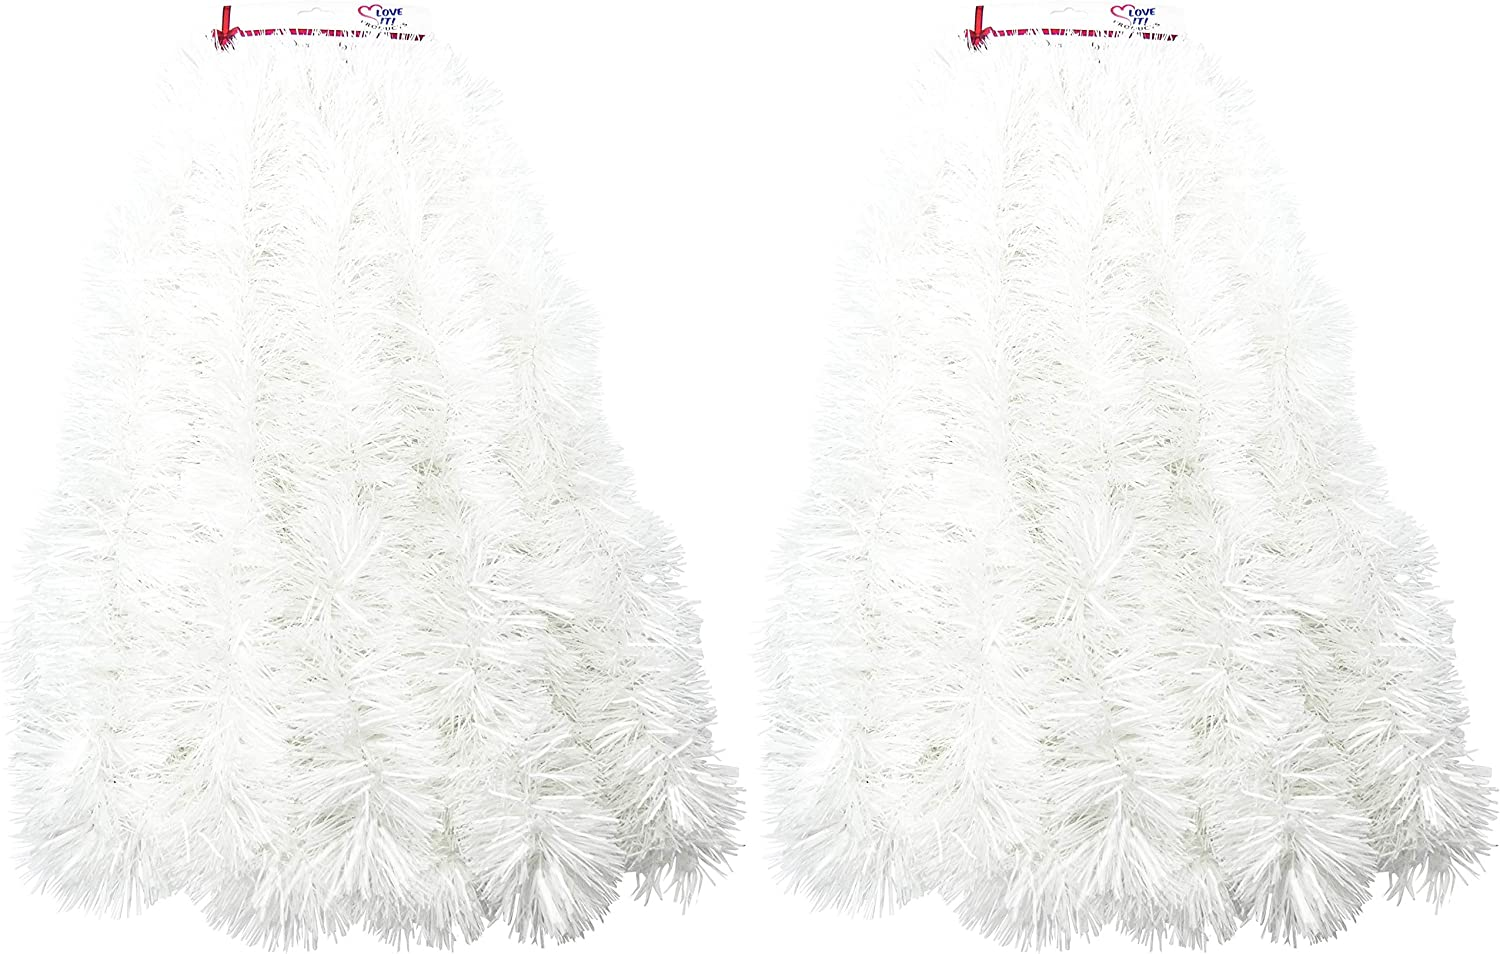 2 Pack 1 Blue 1 White 1 Blue 1 White Super Duper Thick Tinsel Garland 50 Ft Total 1 Blue, 1 White, 2 Packs of 25 ft Tinsel, 50 ft. Total Two Strands Each 25 ft Long